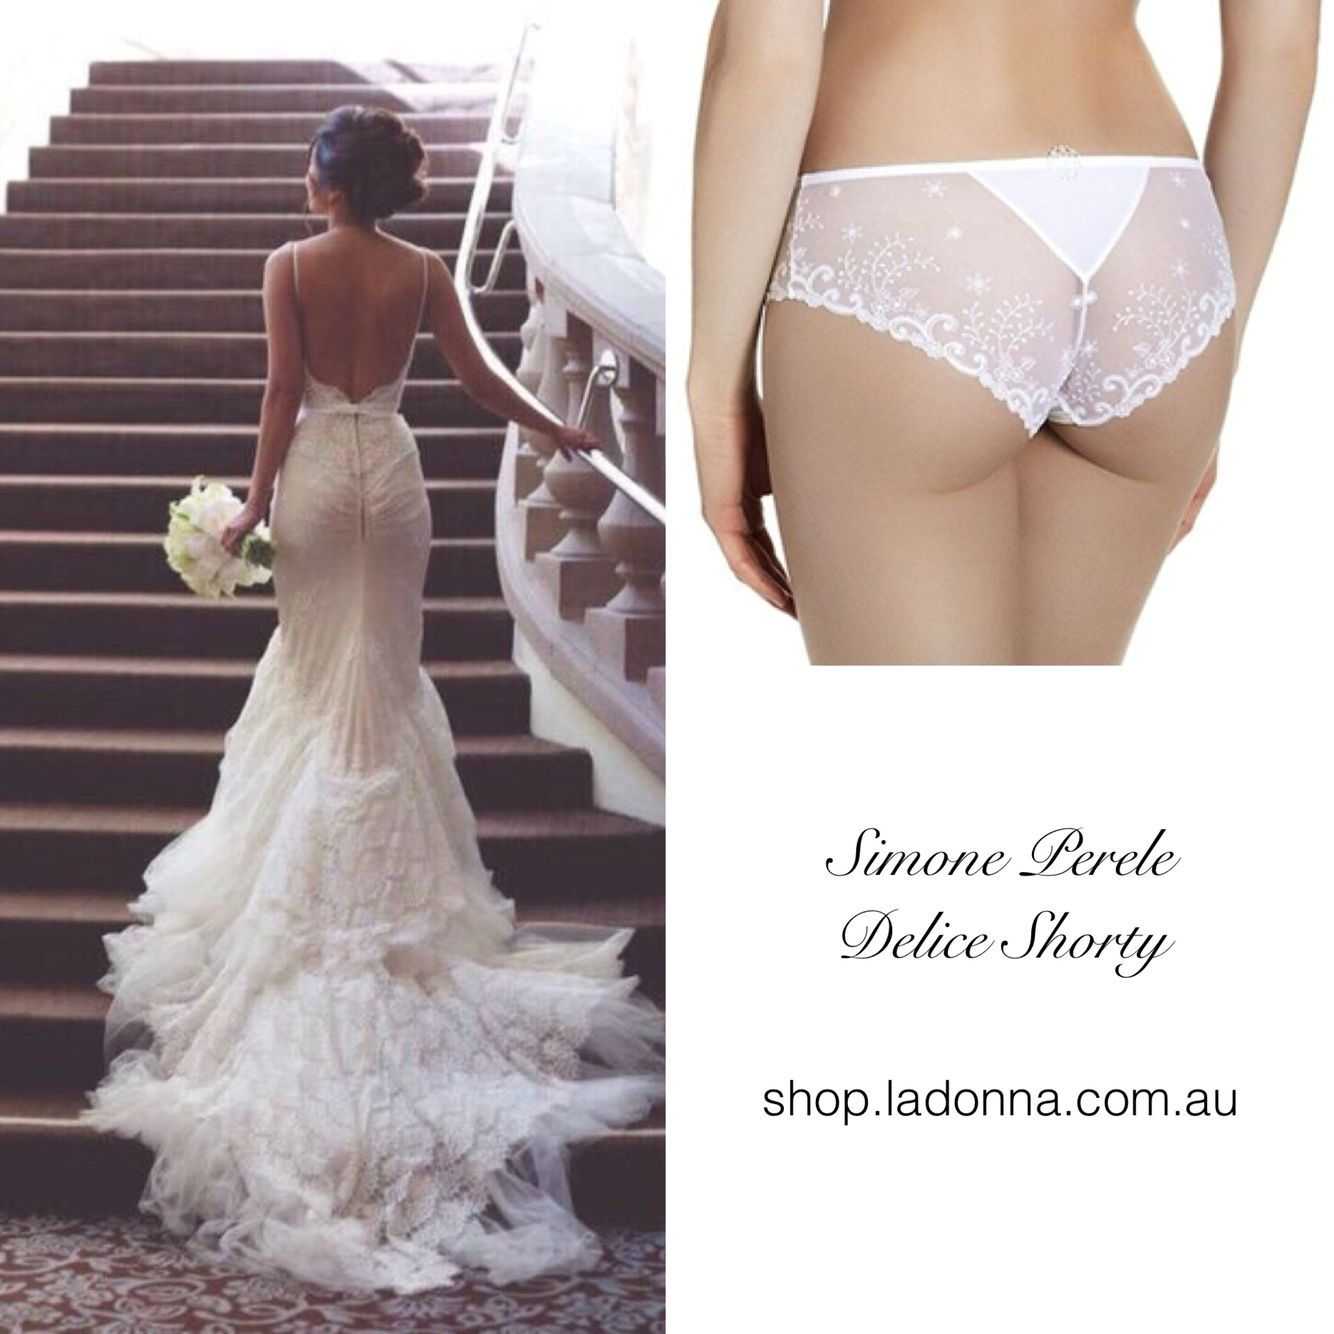 Lingerie under wedding dress  Bridal inspiration The Simone Perele Delice Shorty would work